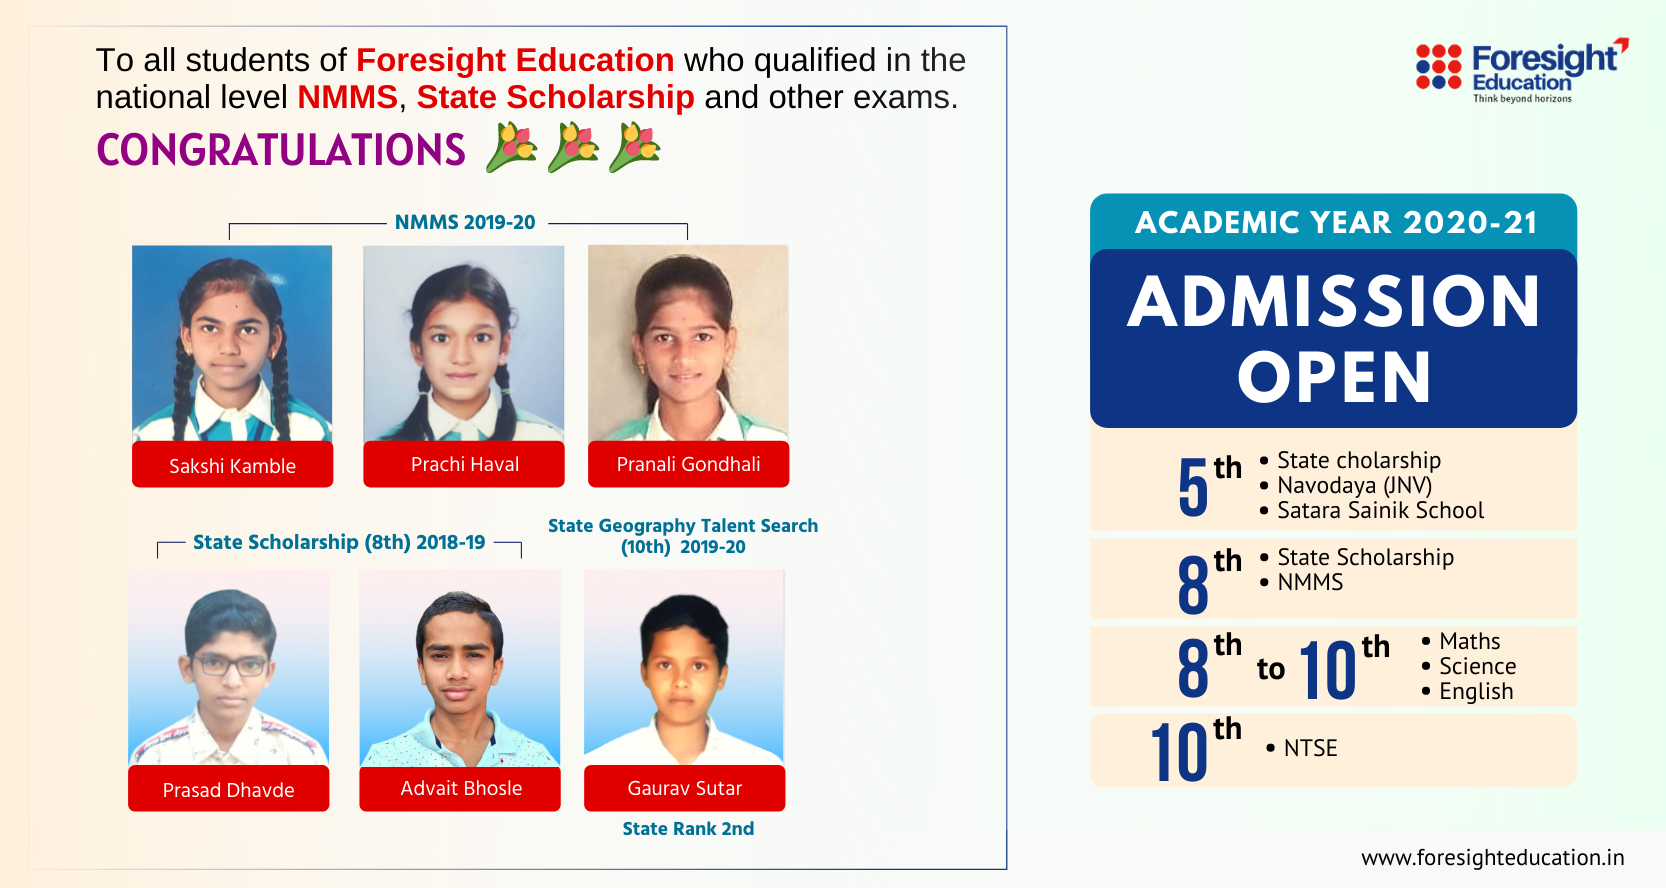 Achievements by Students of Foresight Education